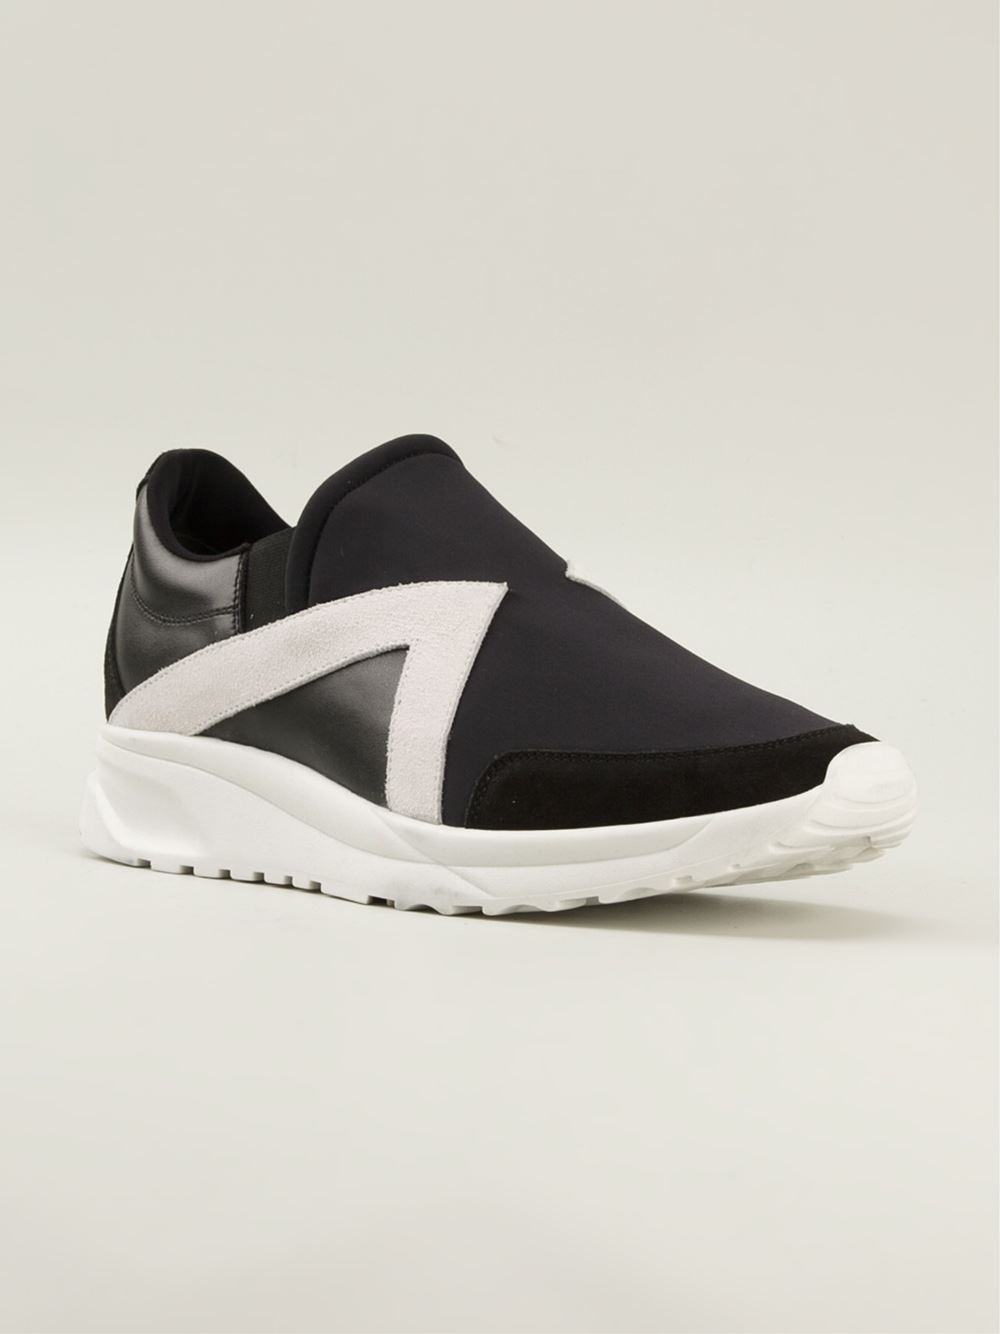 Neil BarrettRunner sneakers